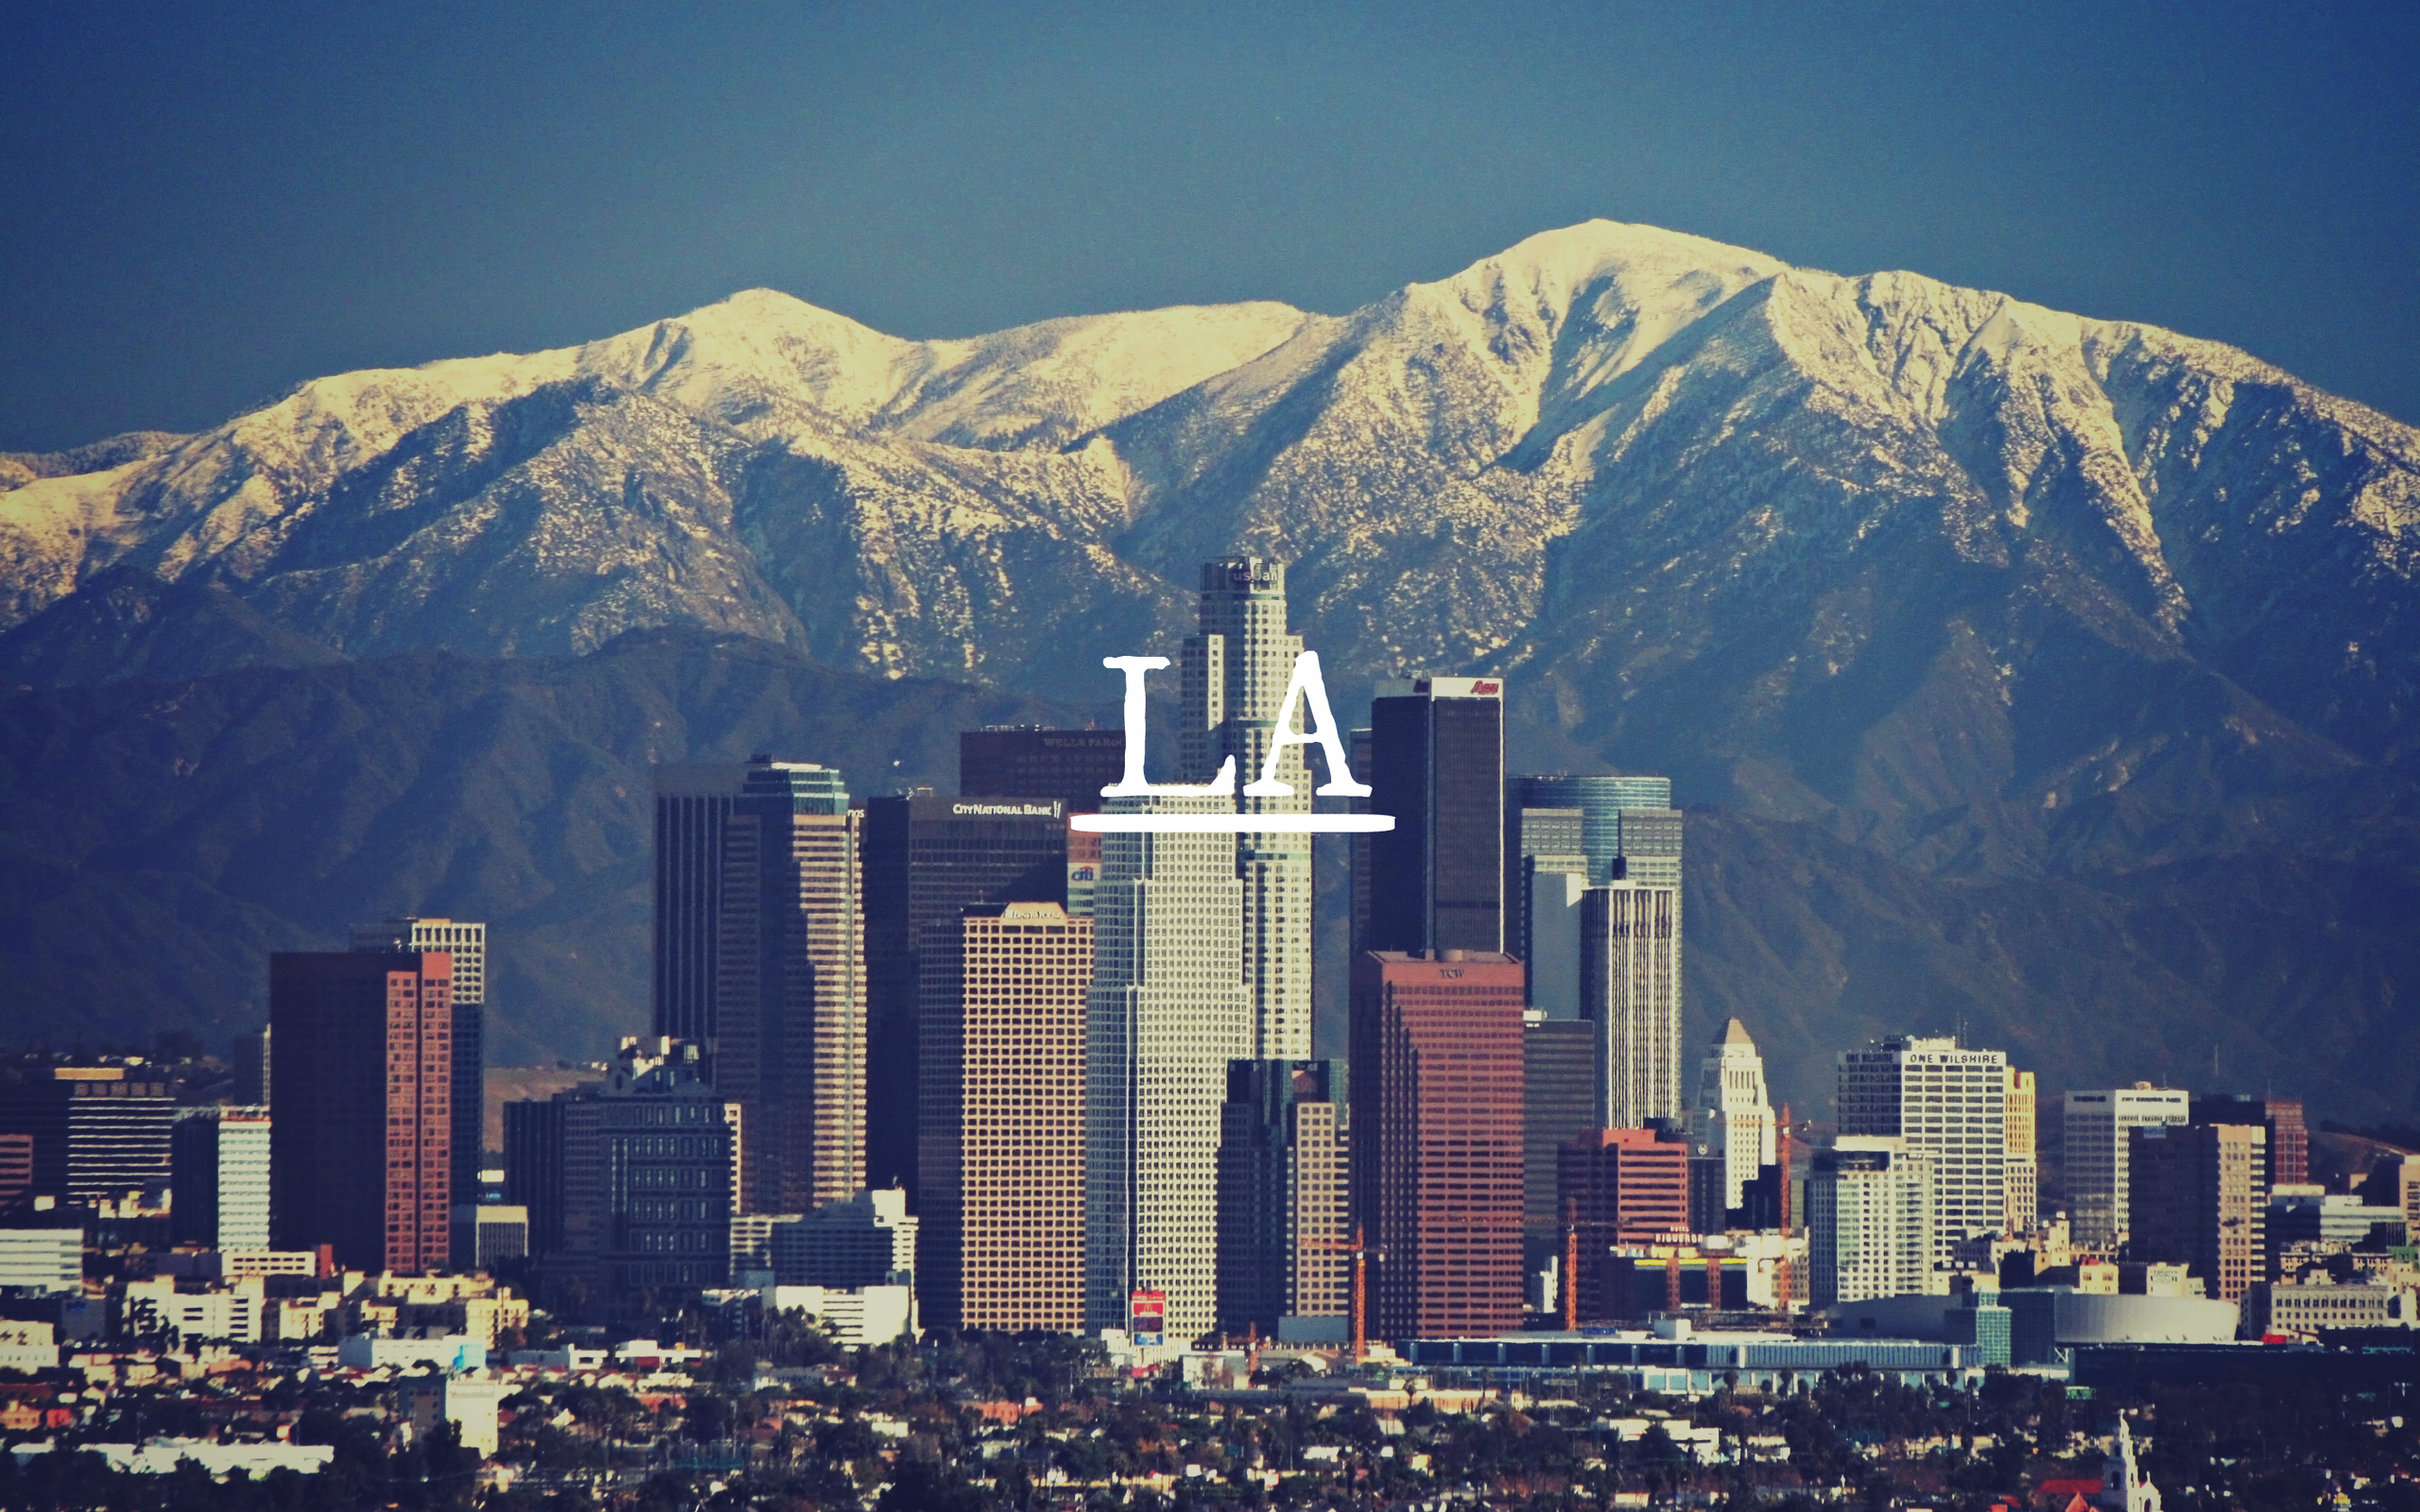 Los Angeles Computer Wallpapers Desktop Backgrounds 2560x1600 ID 2560x1600